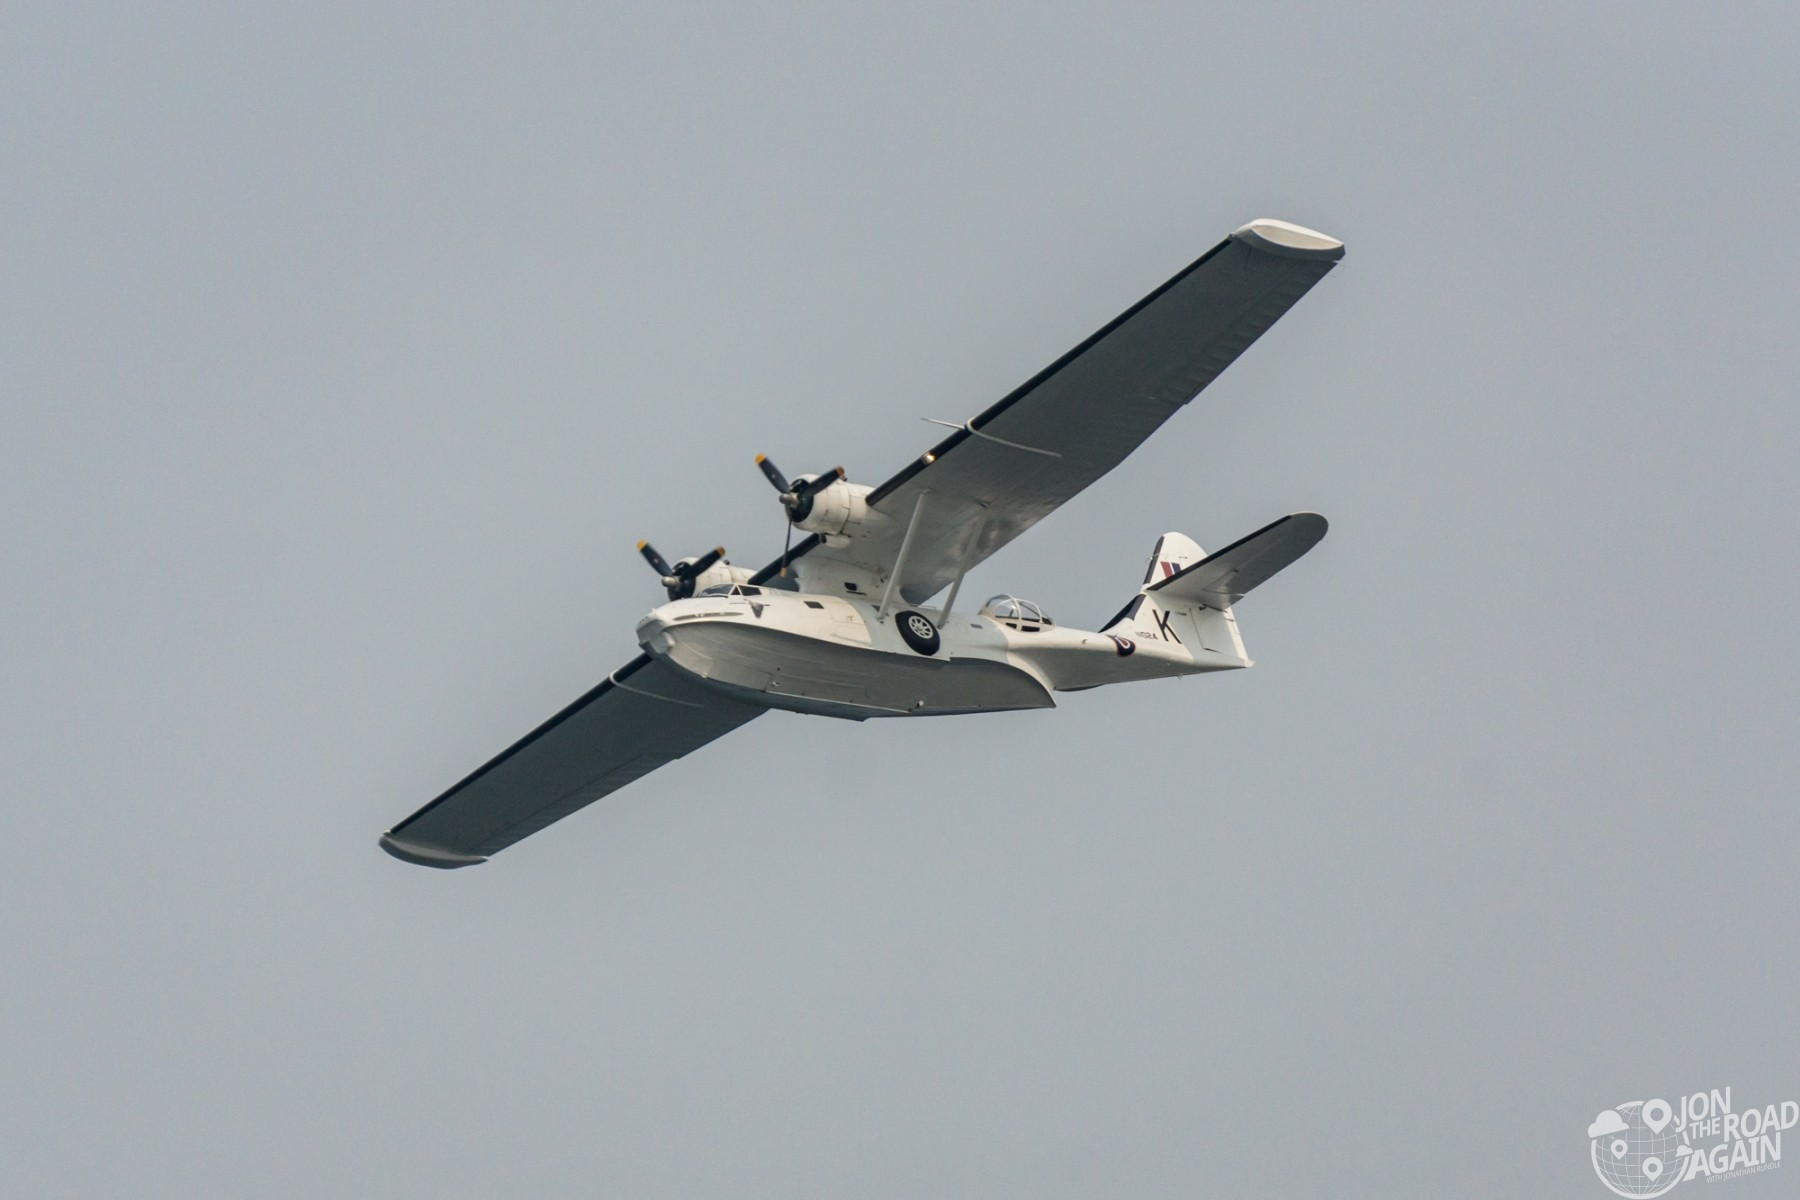 Seafair - PBY - Catalina - Flying Boat